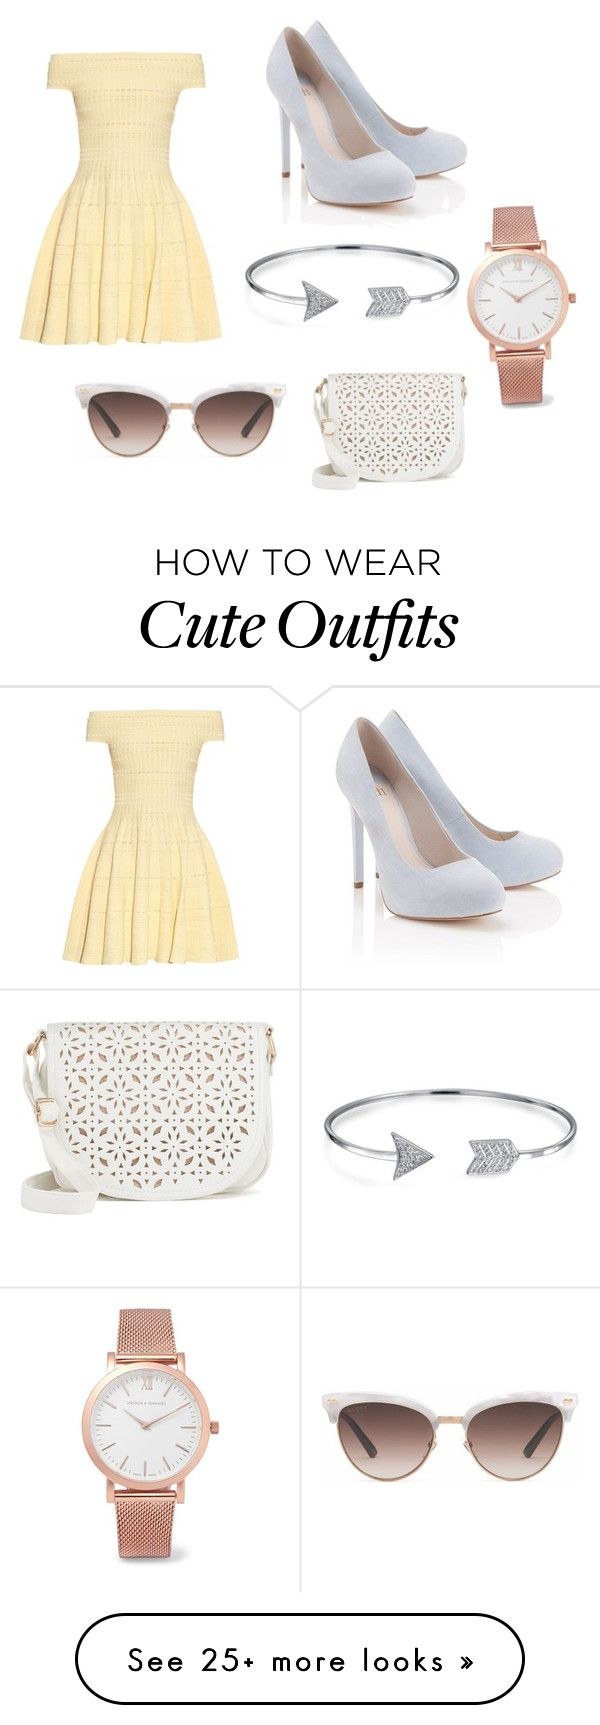 """Cute date outfit"" by brookeleegrambau on Polyvore featuring Alexander McQueen, Lipsy, Under One Sky, Bling Jewelry, Larsson & Jennings and Gucci"